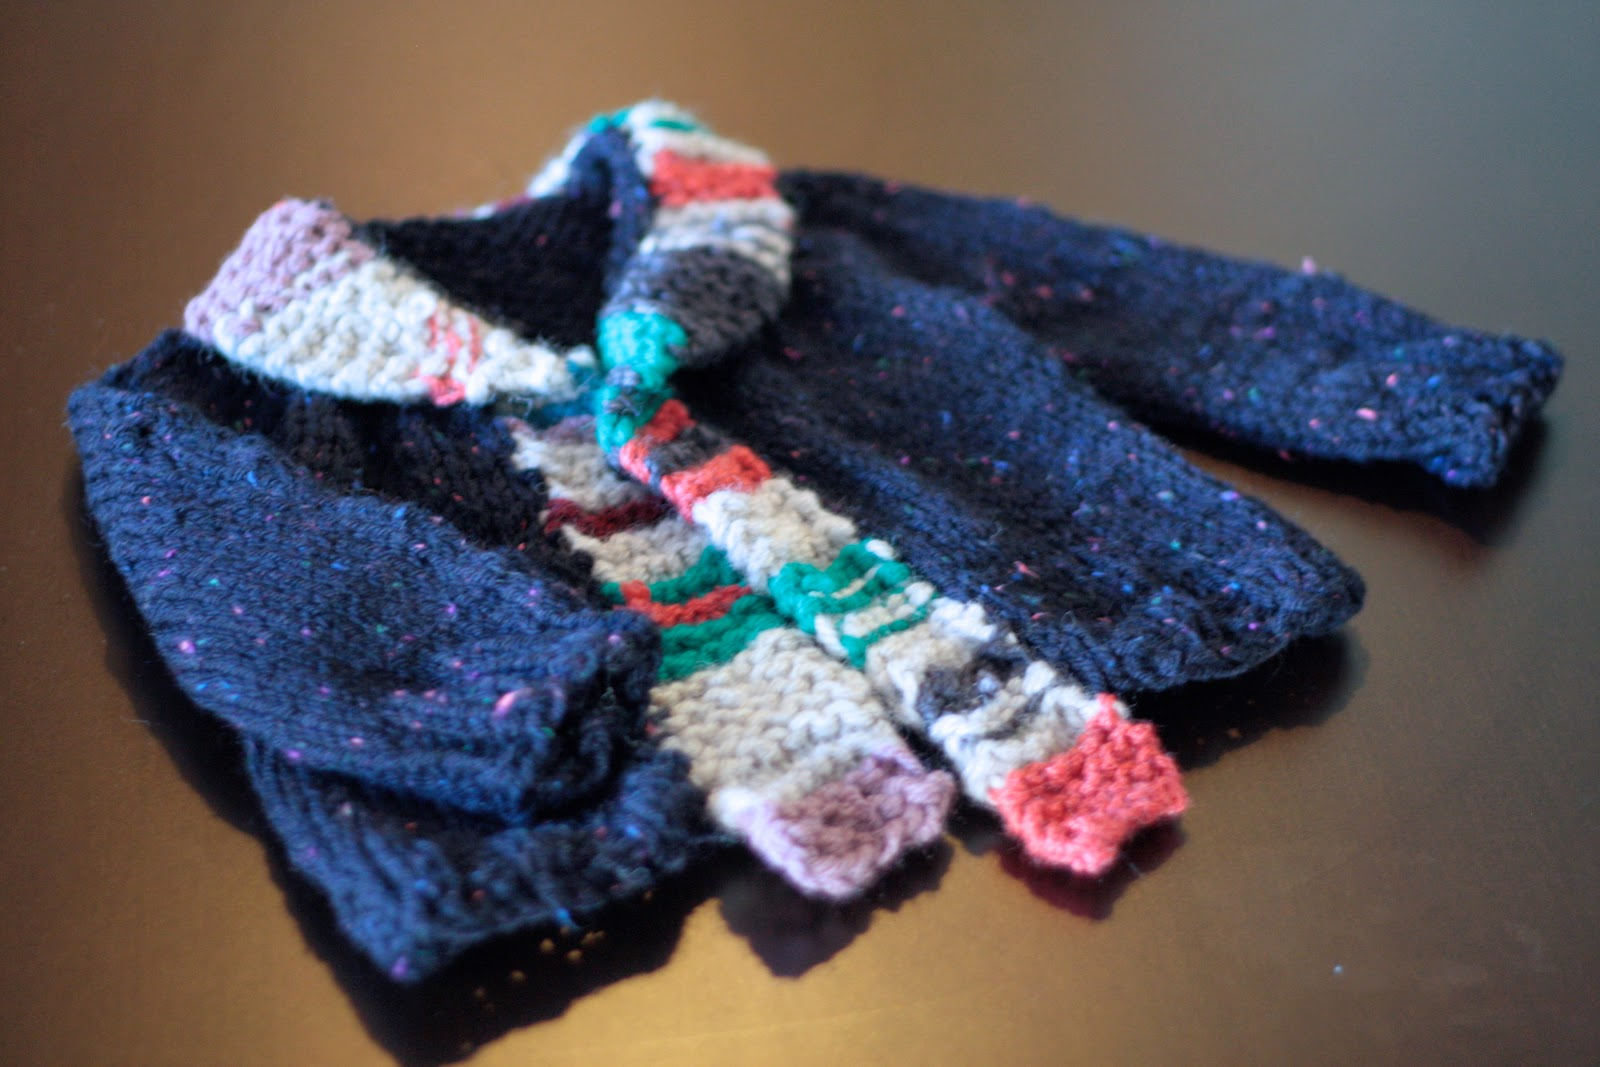 A little blue hand knit baby jumper, with a colourful striped button band.